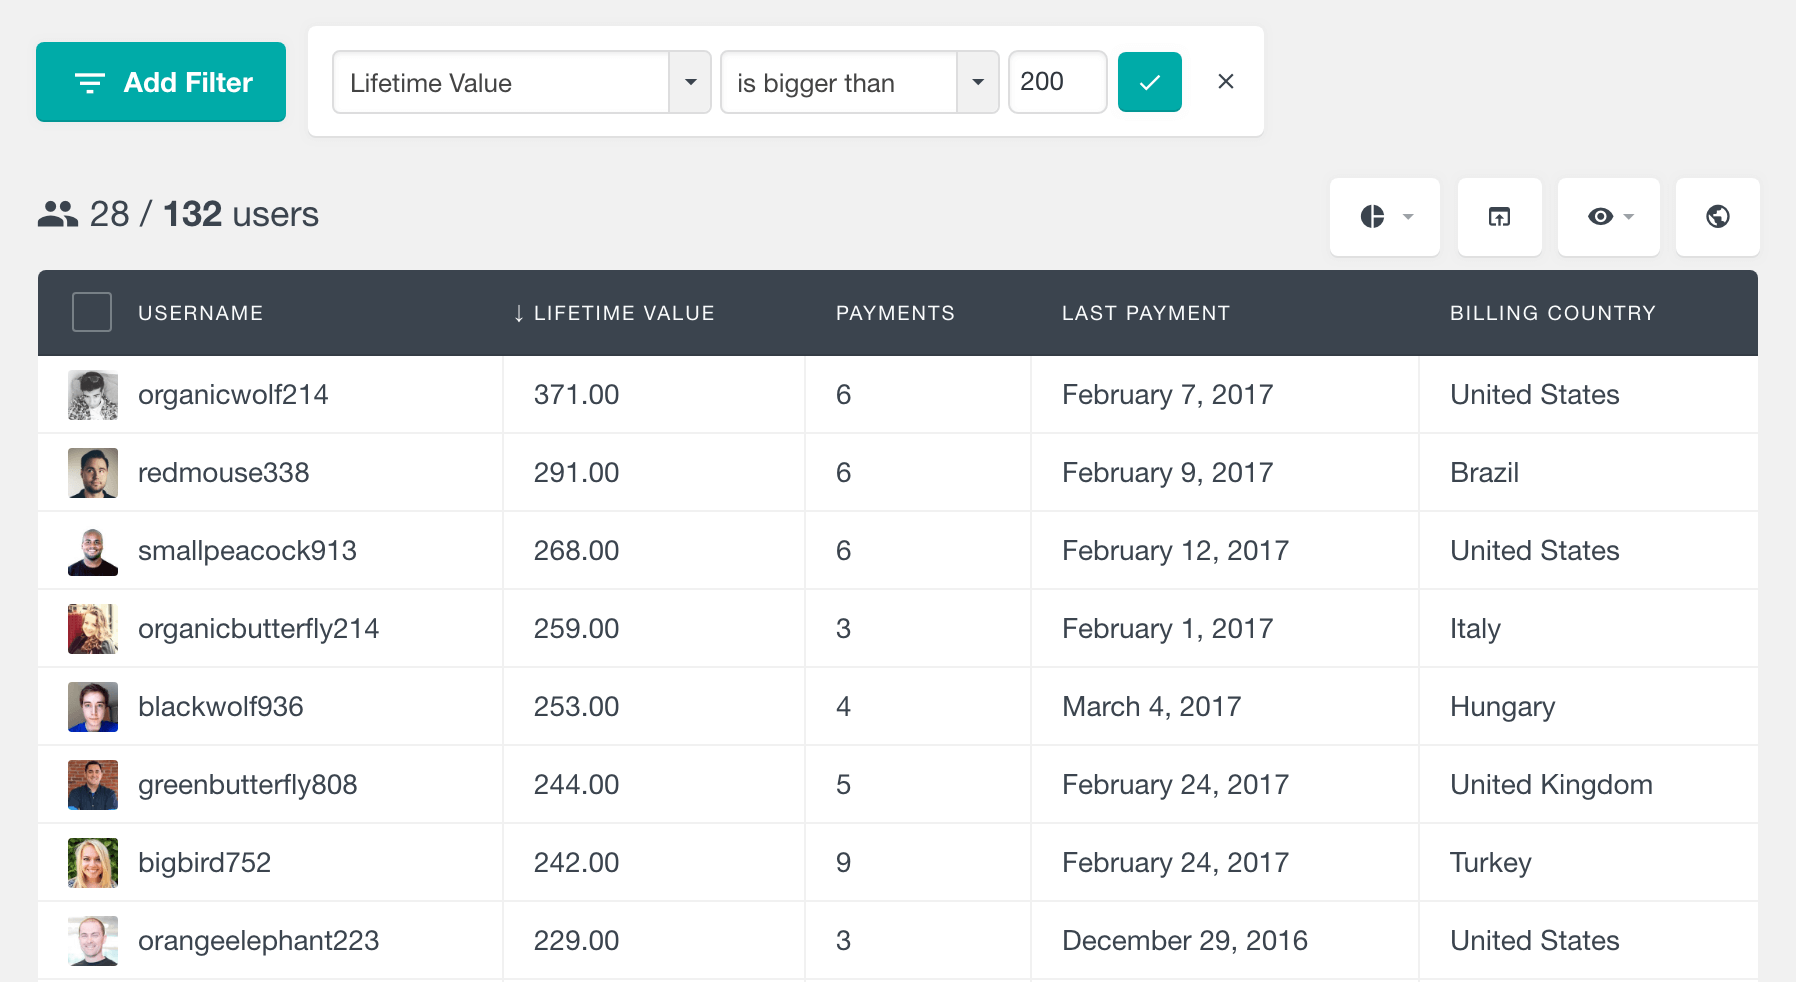 PMPro search members by lifetime value